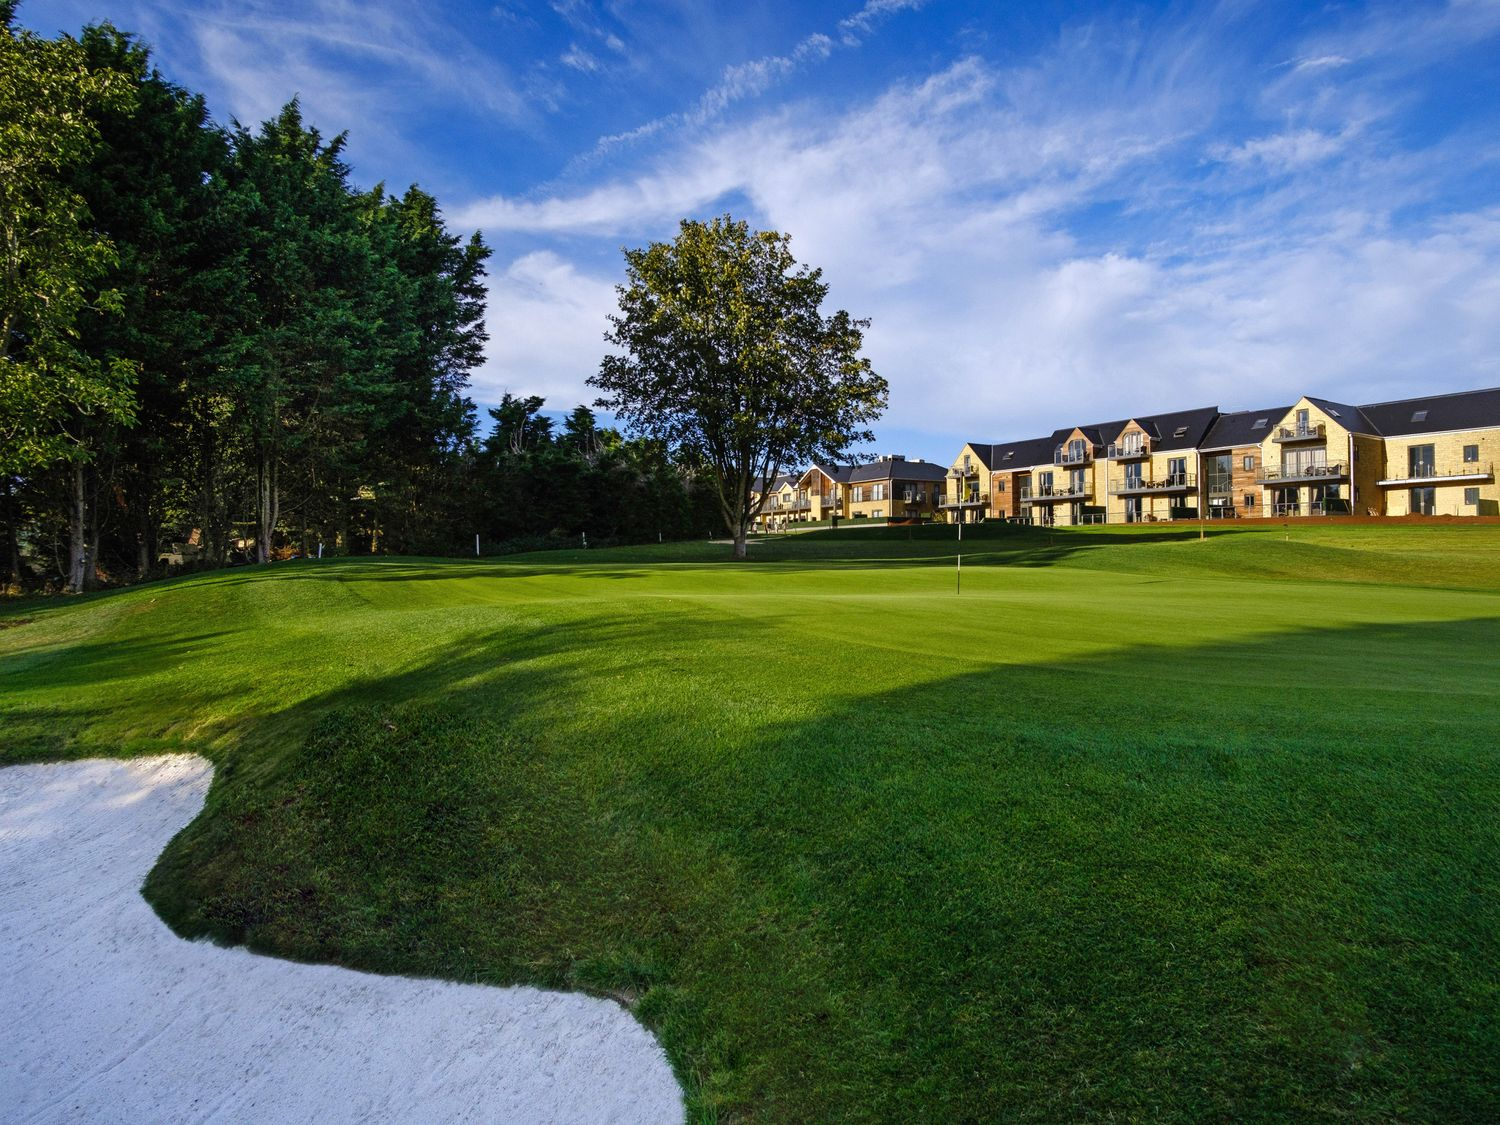 Cotswold Club Golf View 2 Bedroom Apartment - Cotswolds - 1035068 - photo 1